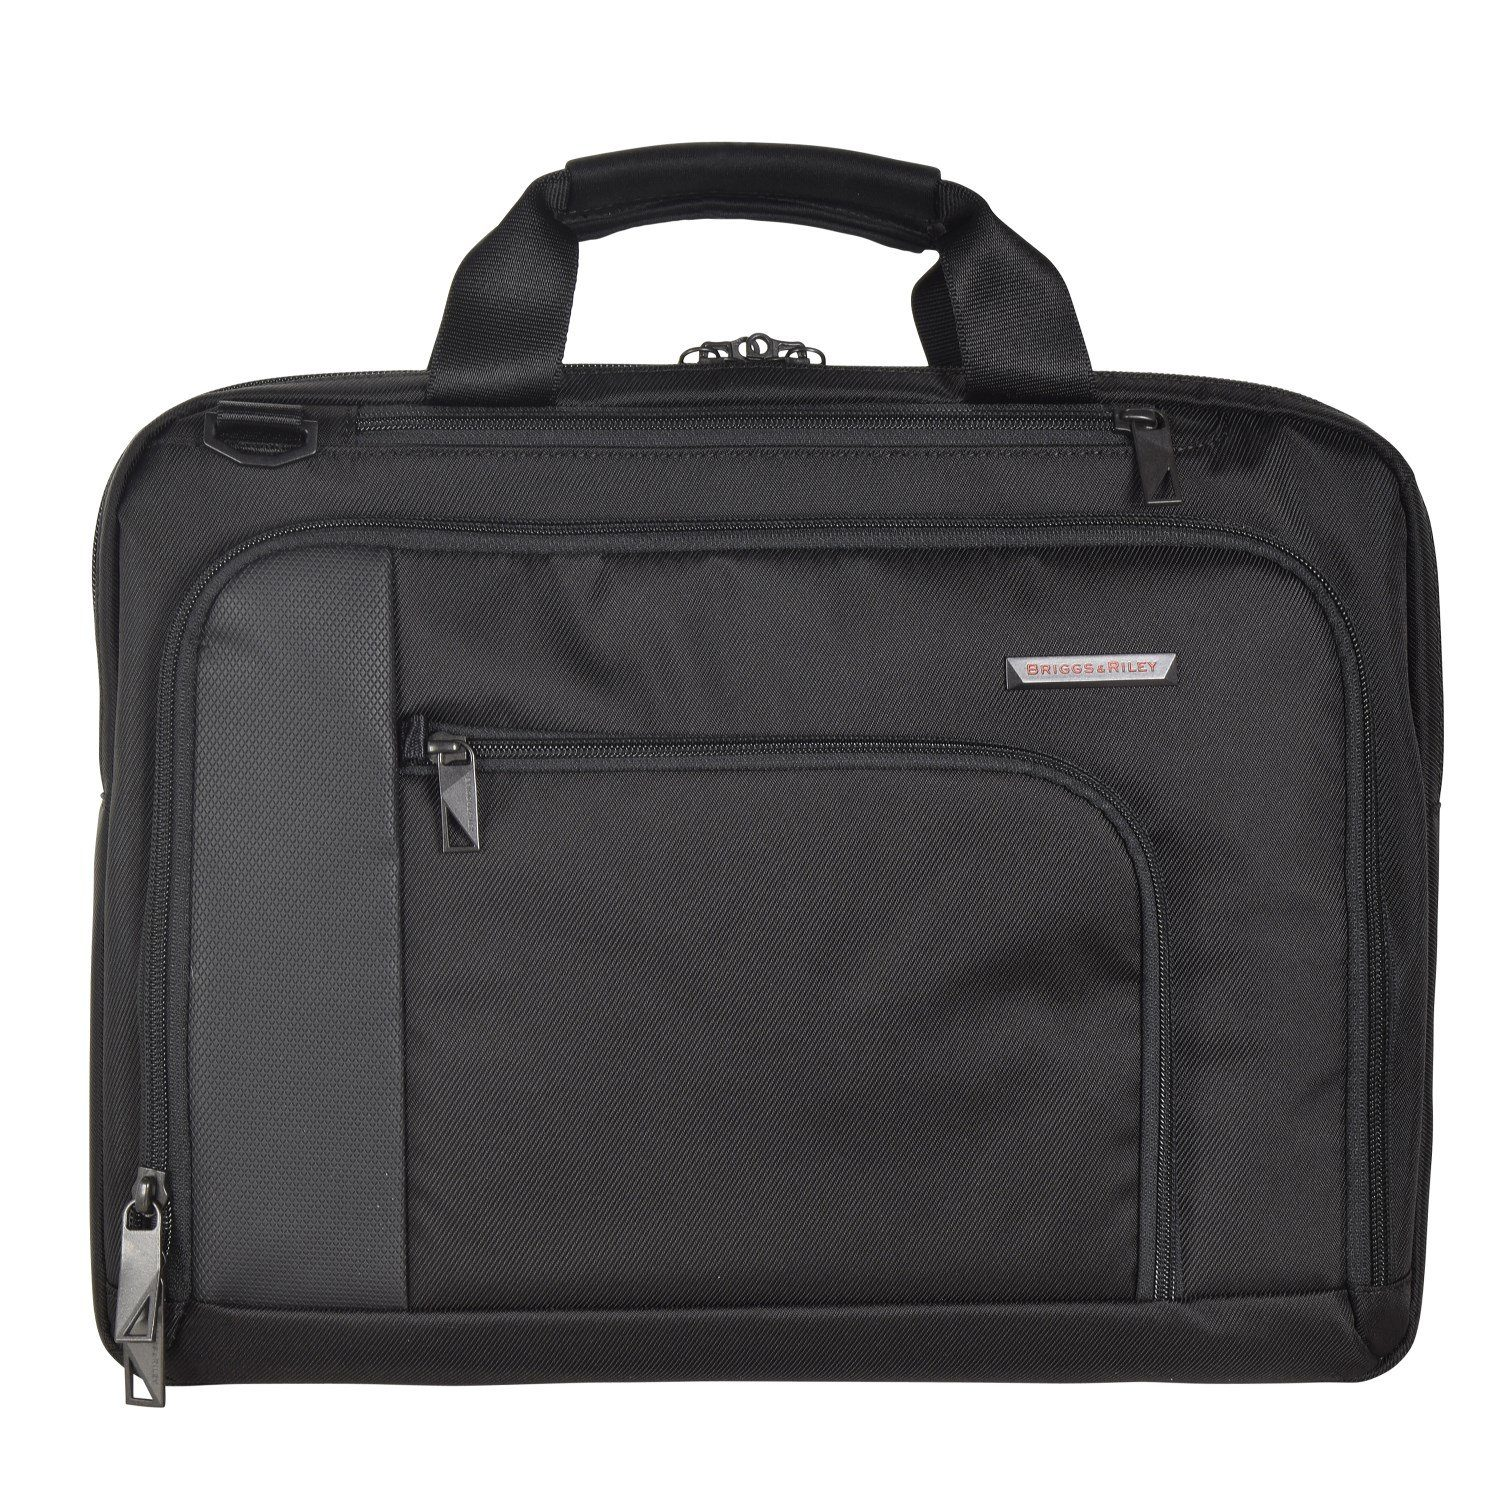 Briggs&Riley Verb Aktentasche 39 cm Laptopfach